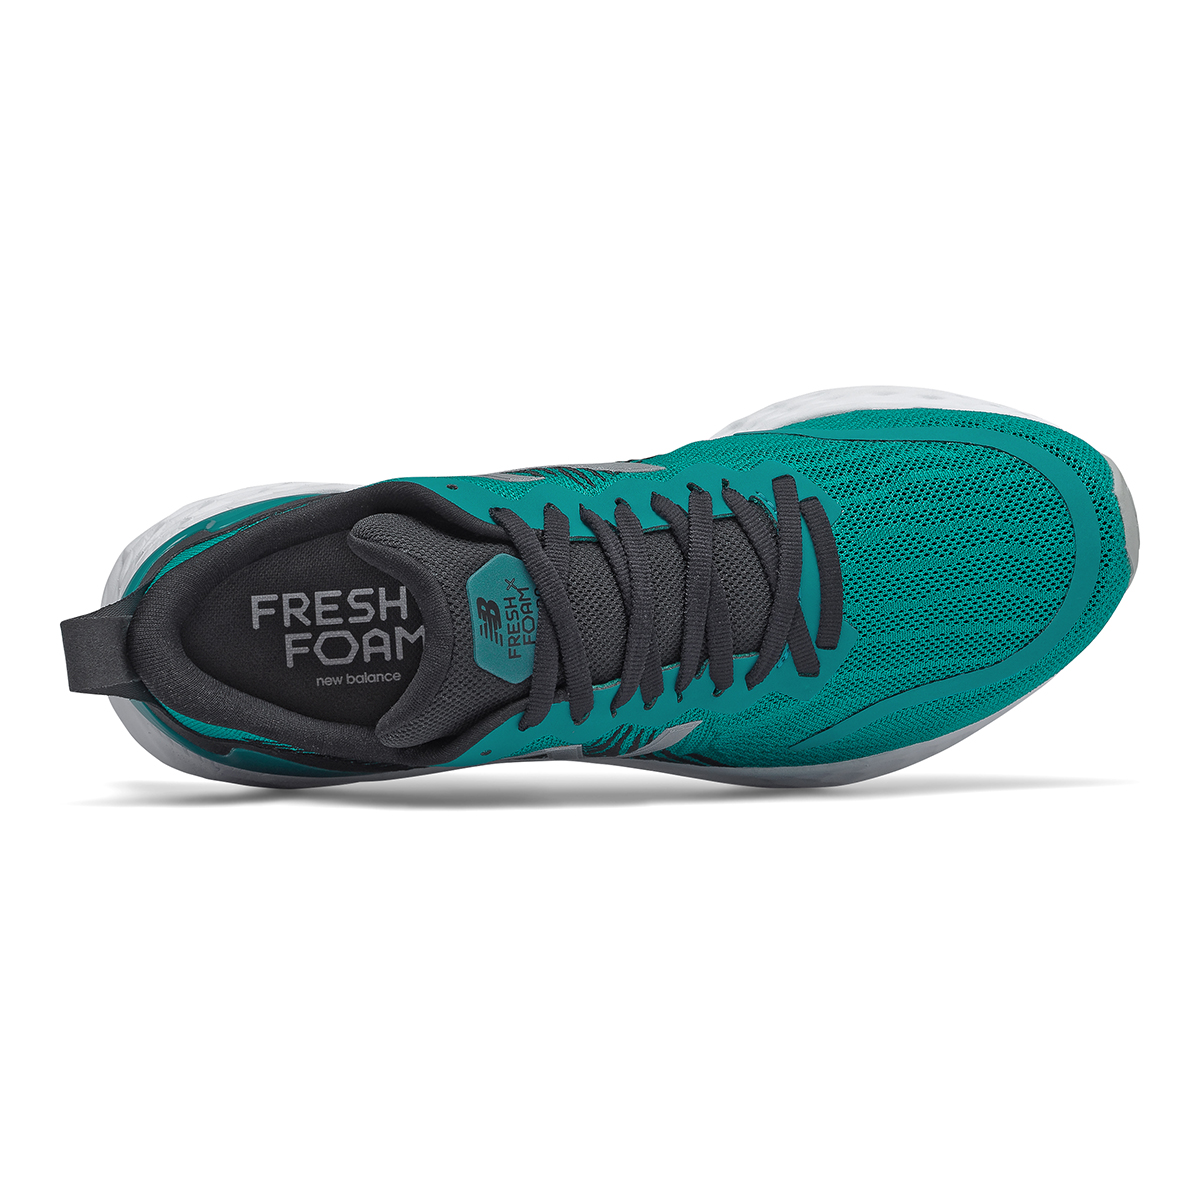 Men's New Balance Tempo Running Shoe - Color: Team Teal - Size: 7.5 - Width: Wide, Team Teal, large, image 3